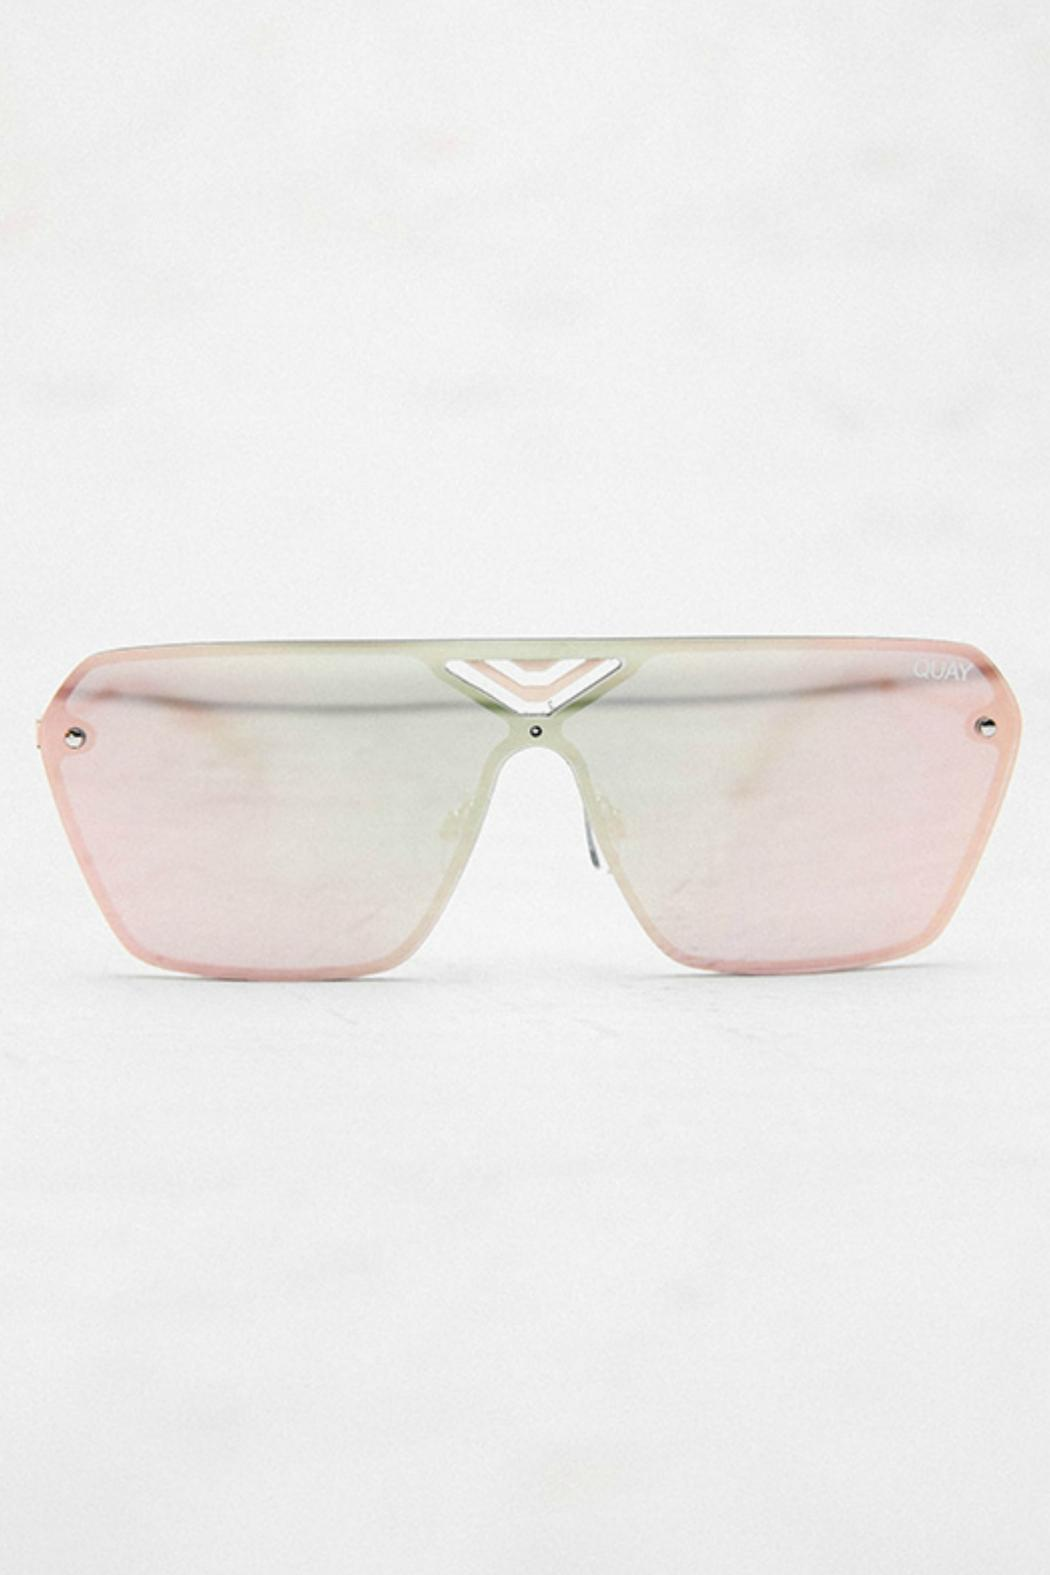 83dec15a885 Quay Australia Stargaze Sunnies from Texas by POE and Arrows ...